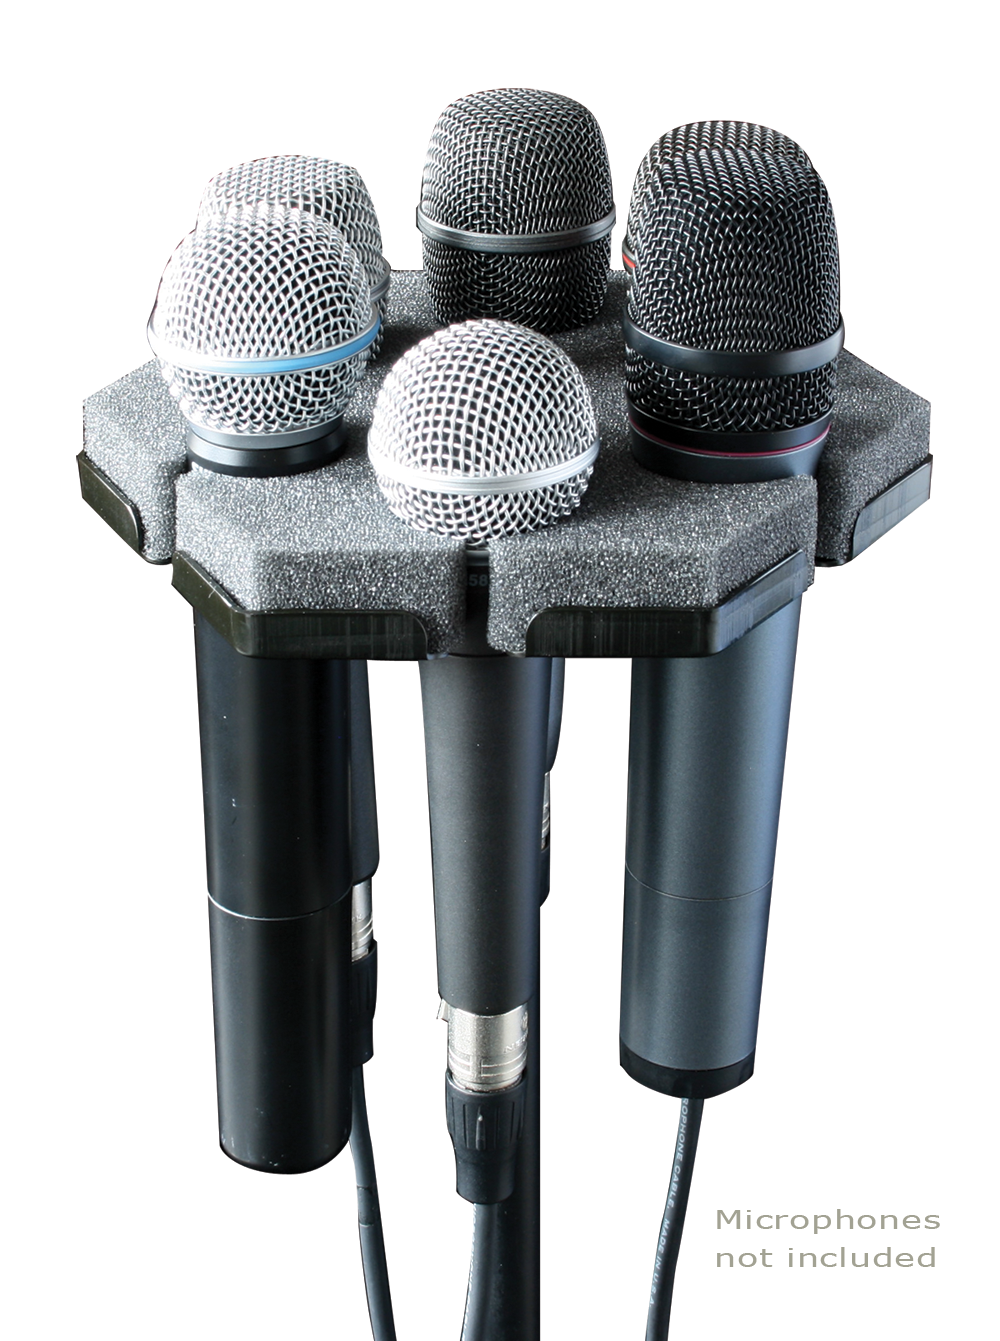 ace backstage softpod 6 microphone holder. Black Bedroom Furniture Sets. Home Design Ideas